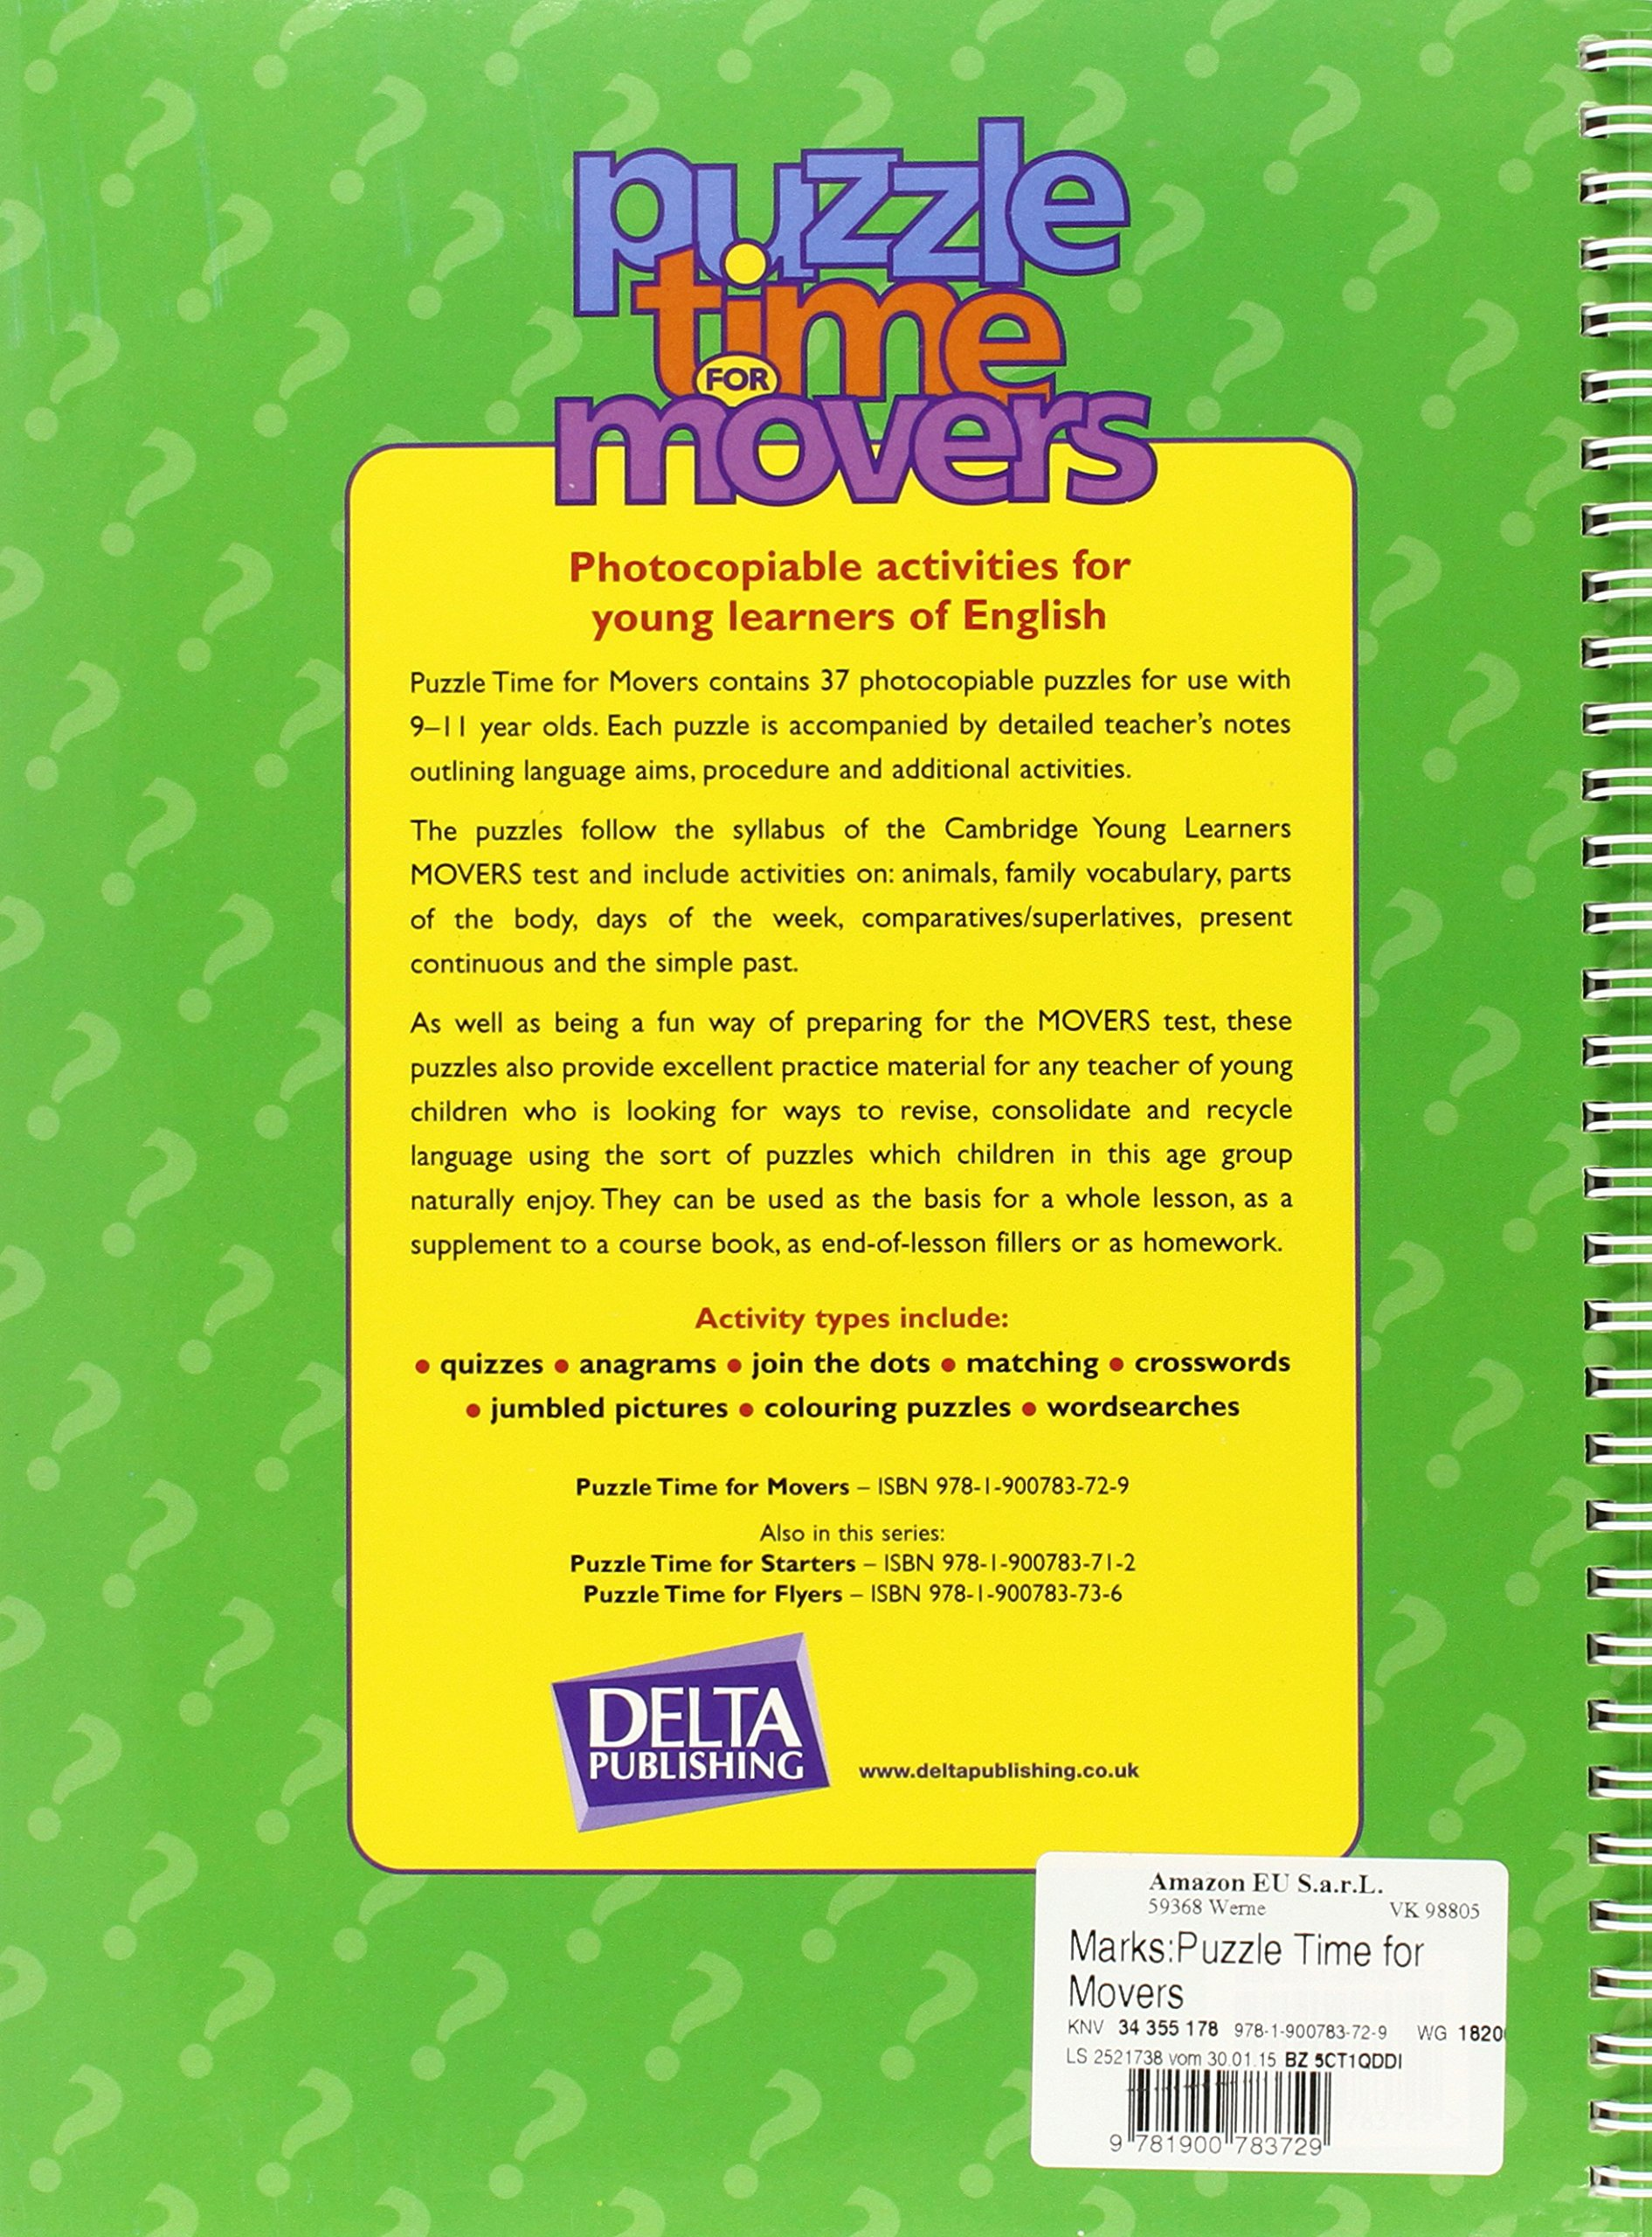 Buy Puzzle Time for Movers - Photocopiable Activities for